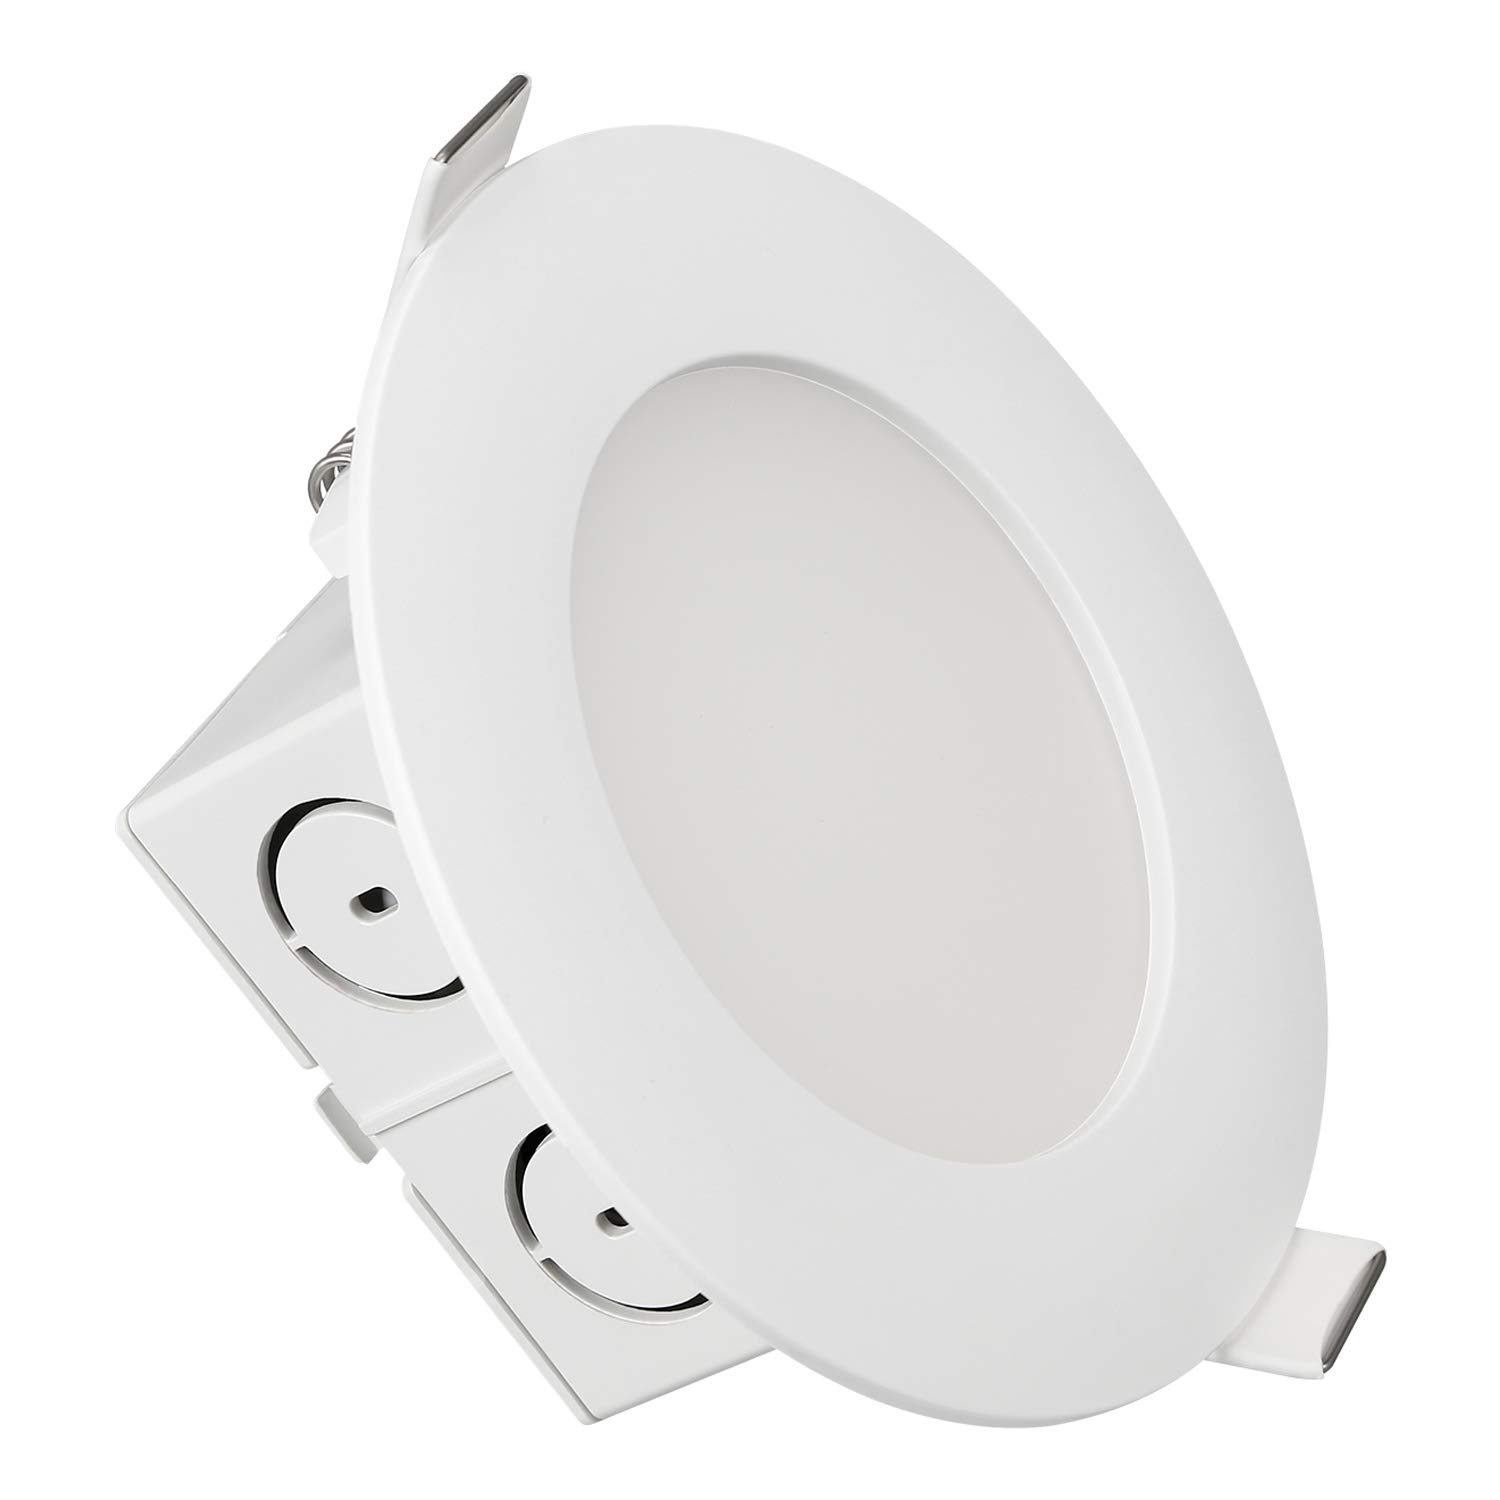 TORCHSTAR 4 Pack 4 inch Slim Recessed Ceiling Light Dimmable Airtight Downlight with Junction Box 9W 65W Equivalent 650lm 5000K Daylight White R1-XB1DL4D-9W50D-4P UL /& Energy Star Certified